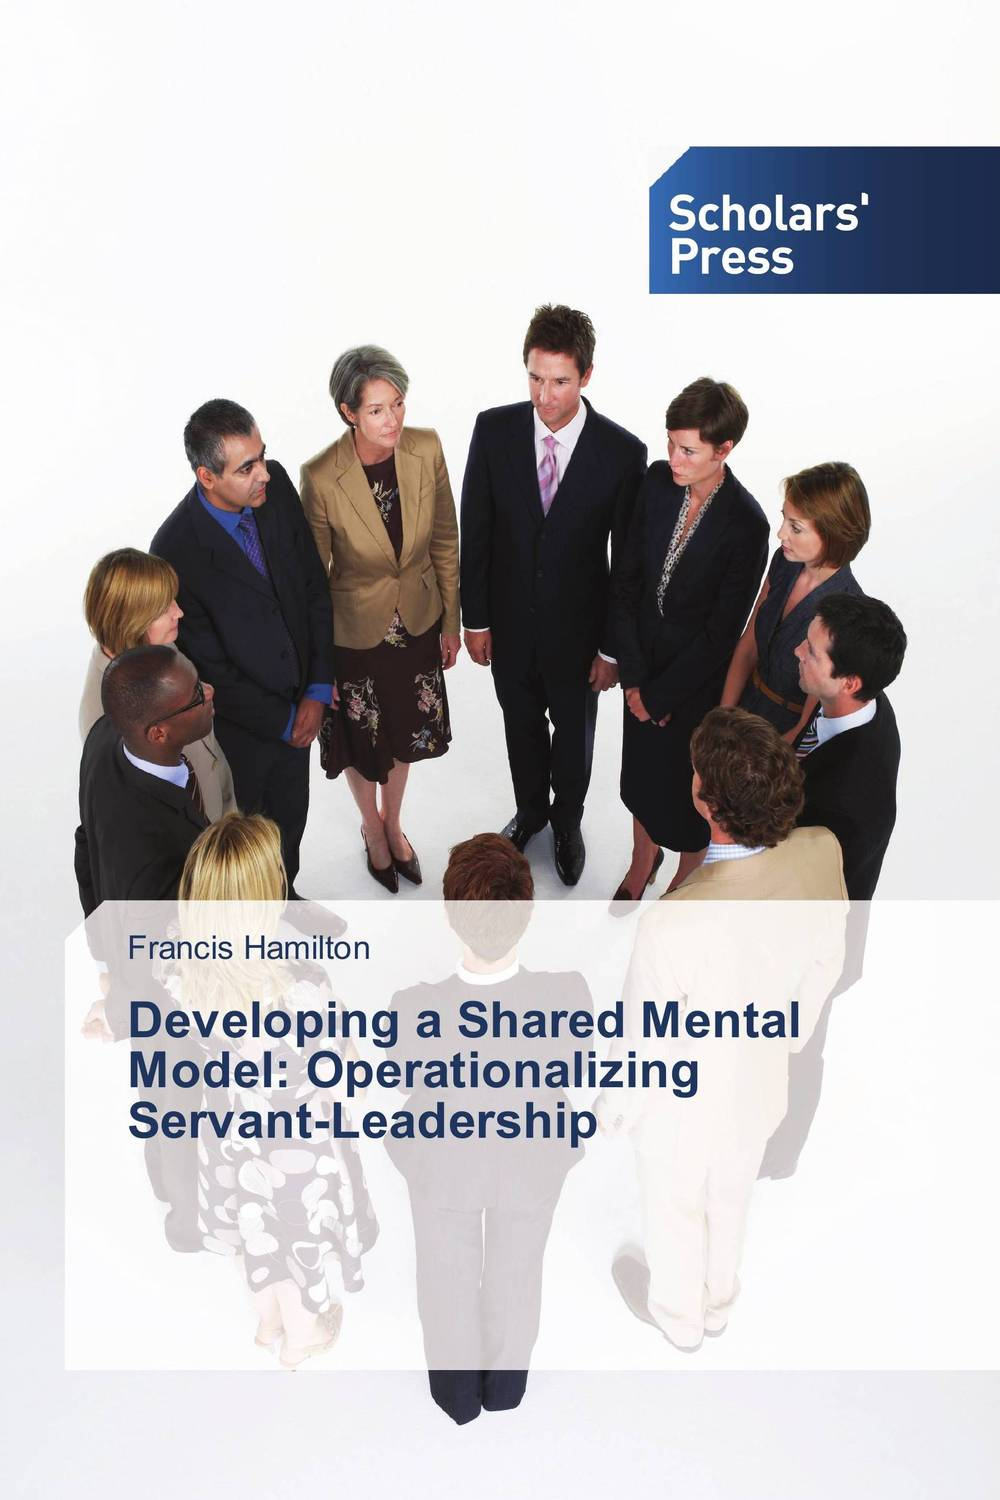 Developing a Shared Mental Model: Operationalizing Servant-Leadership death of a civil servant